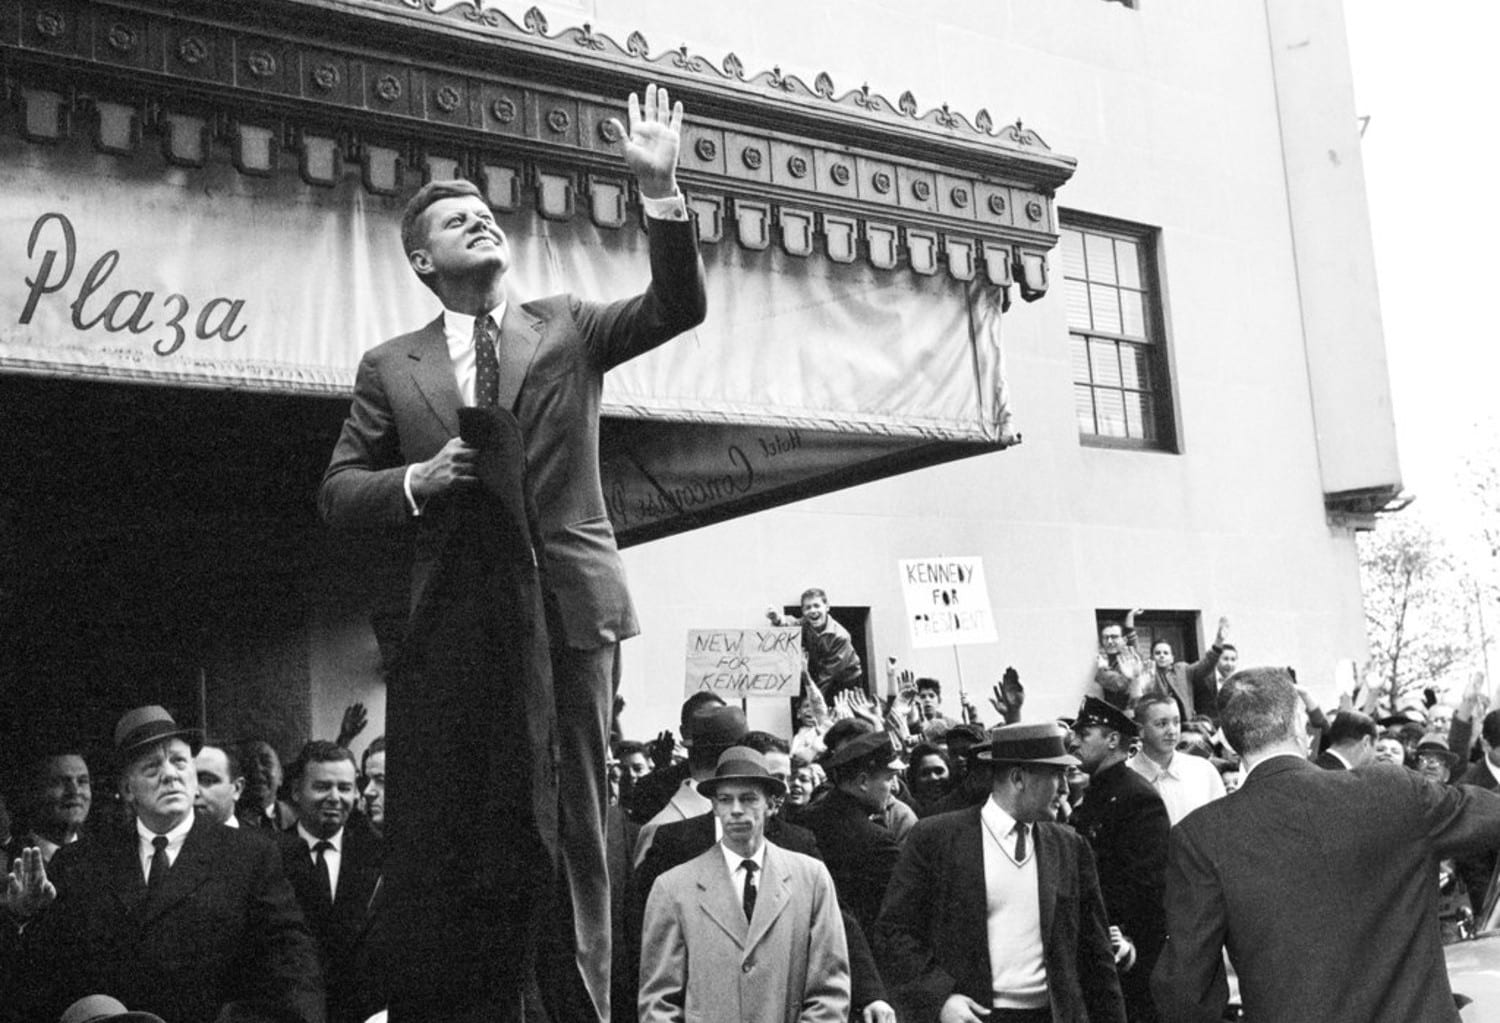 JohnKennedy NYC Nov1960 1500 crop